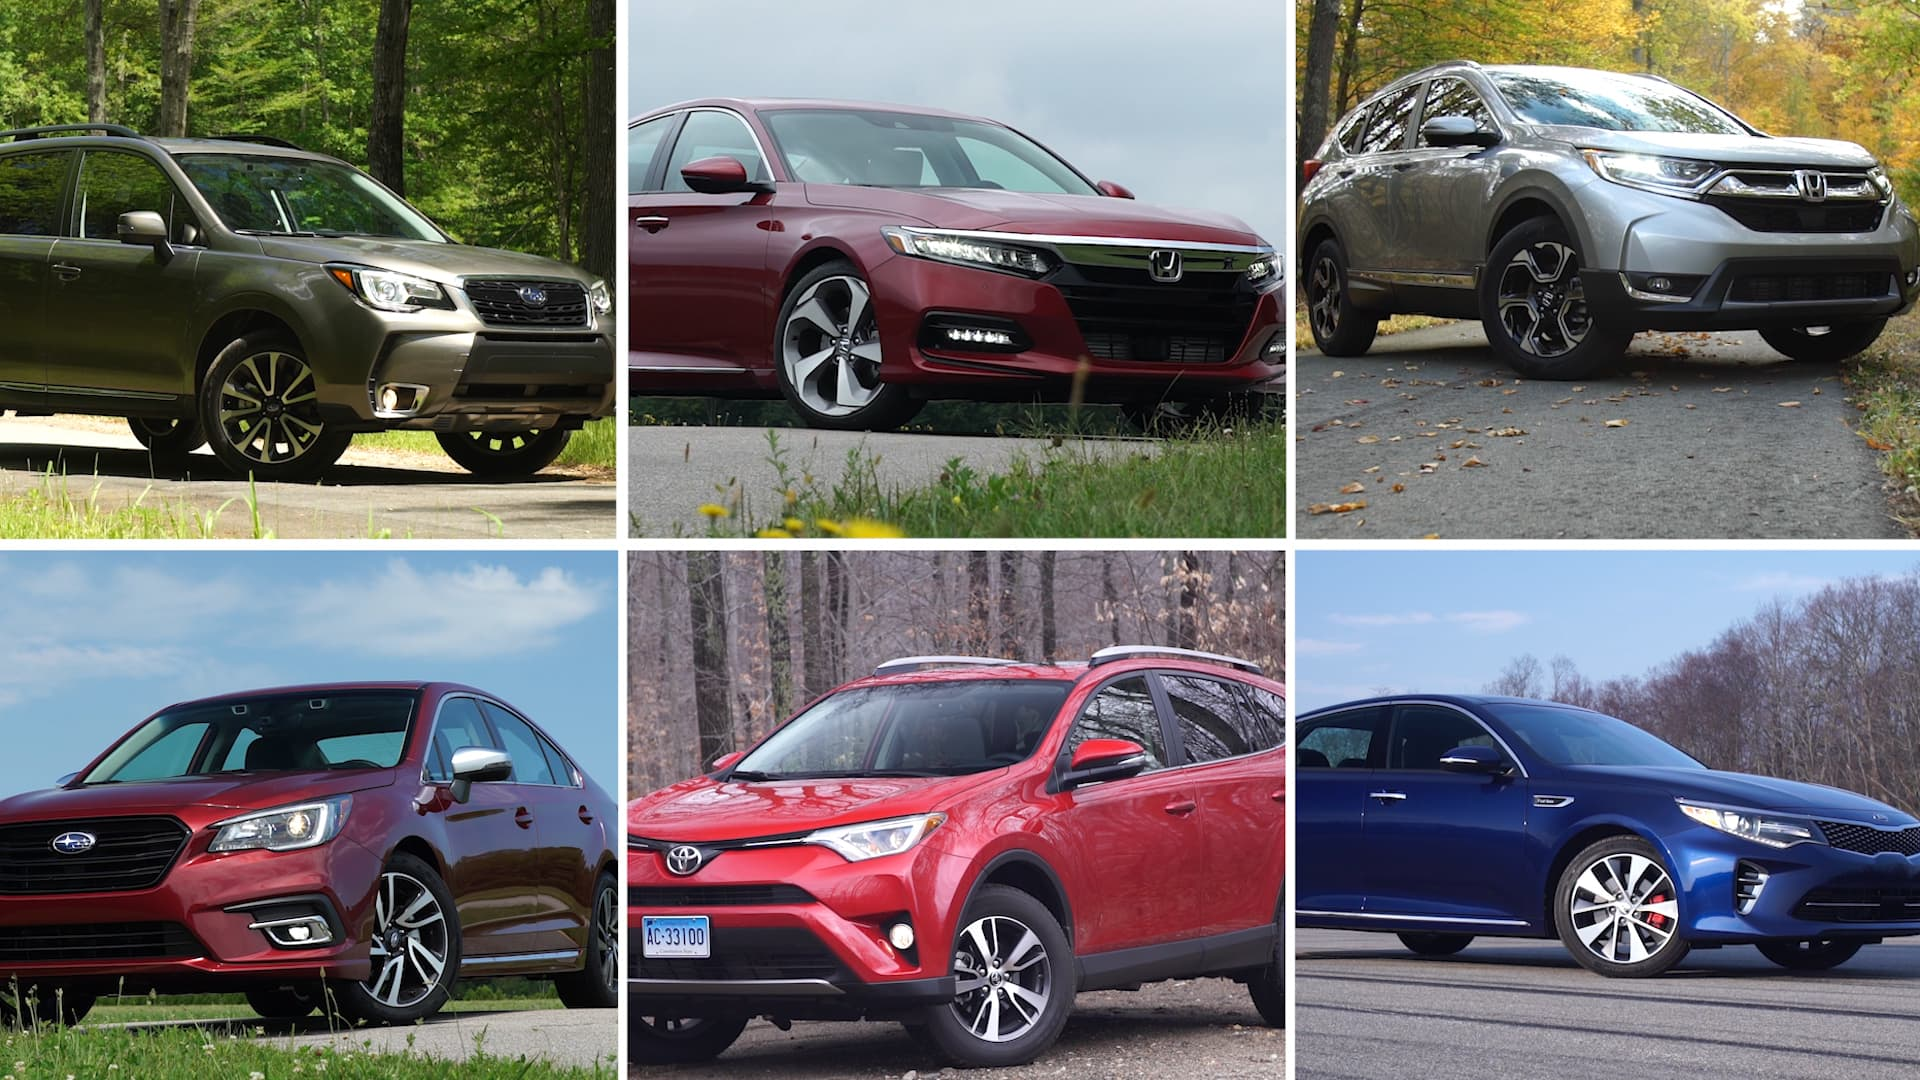 Ranked: The 6 best cars for first-time buyers under $25,000